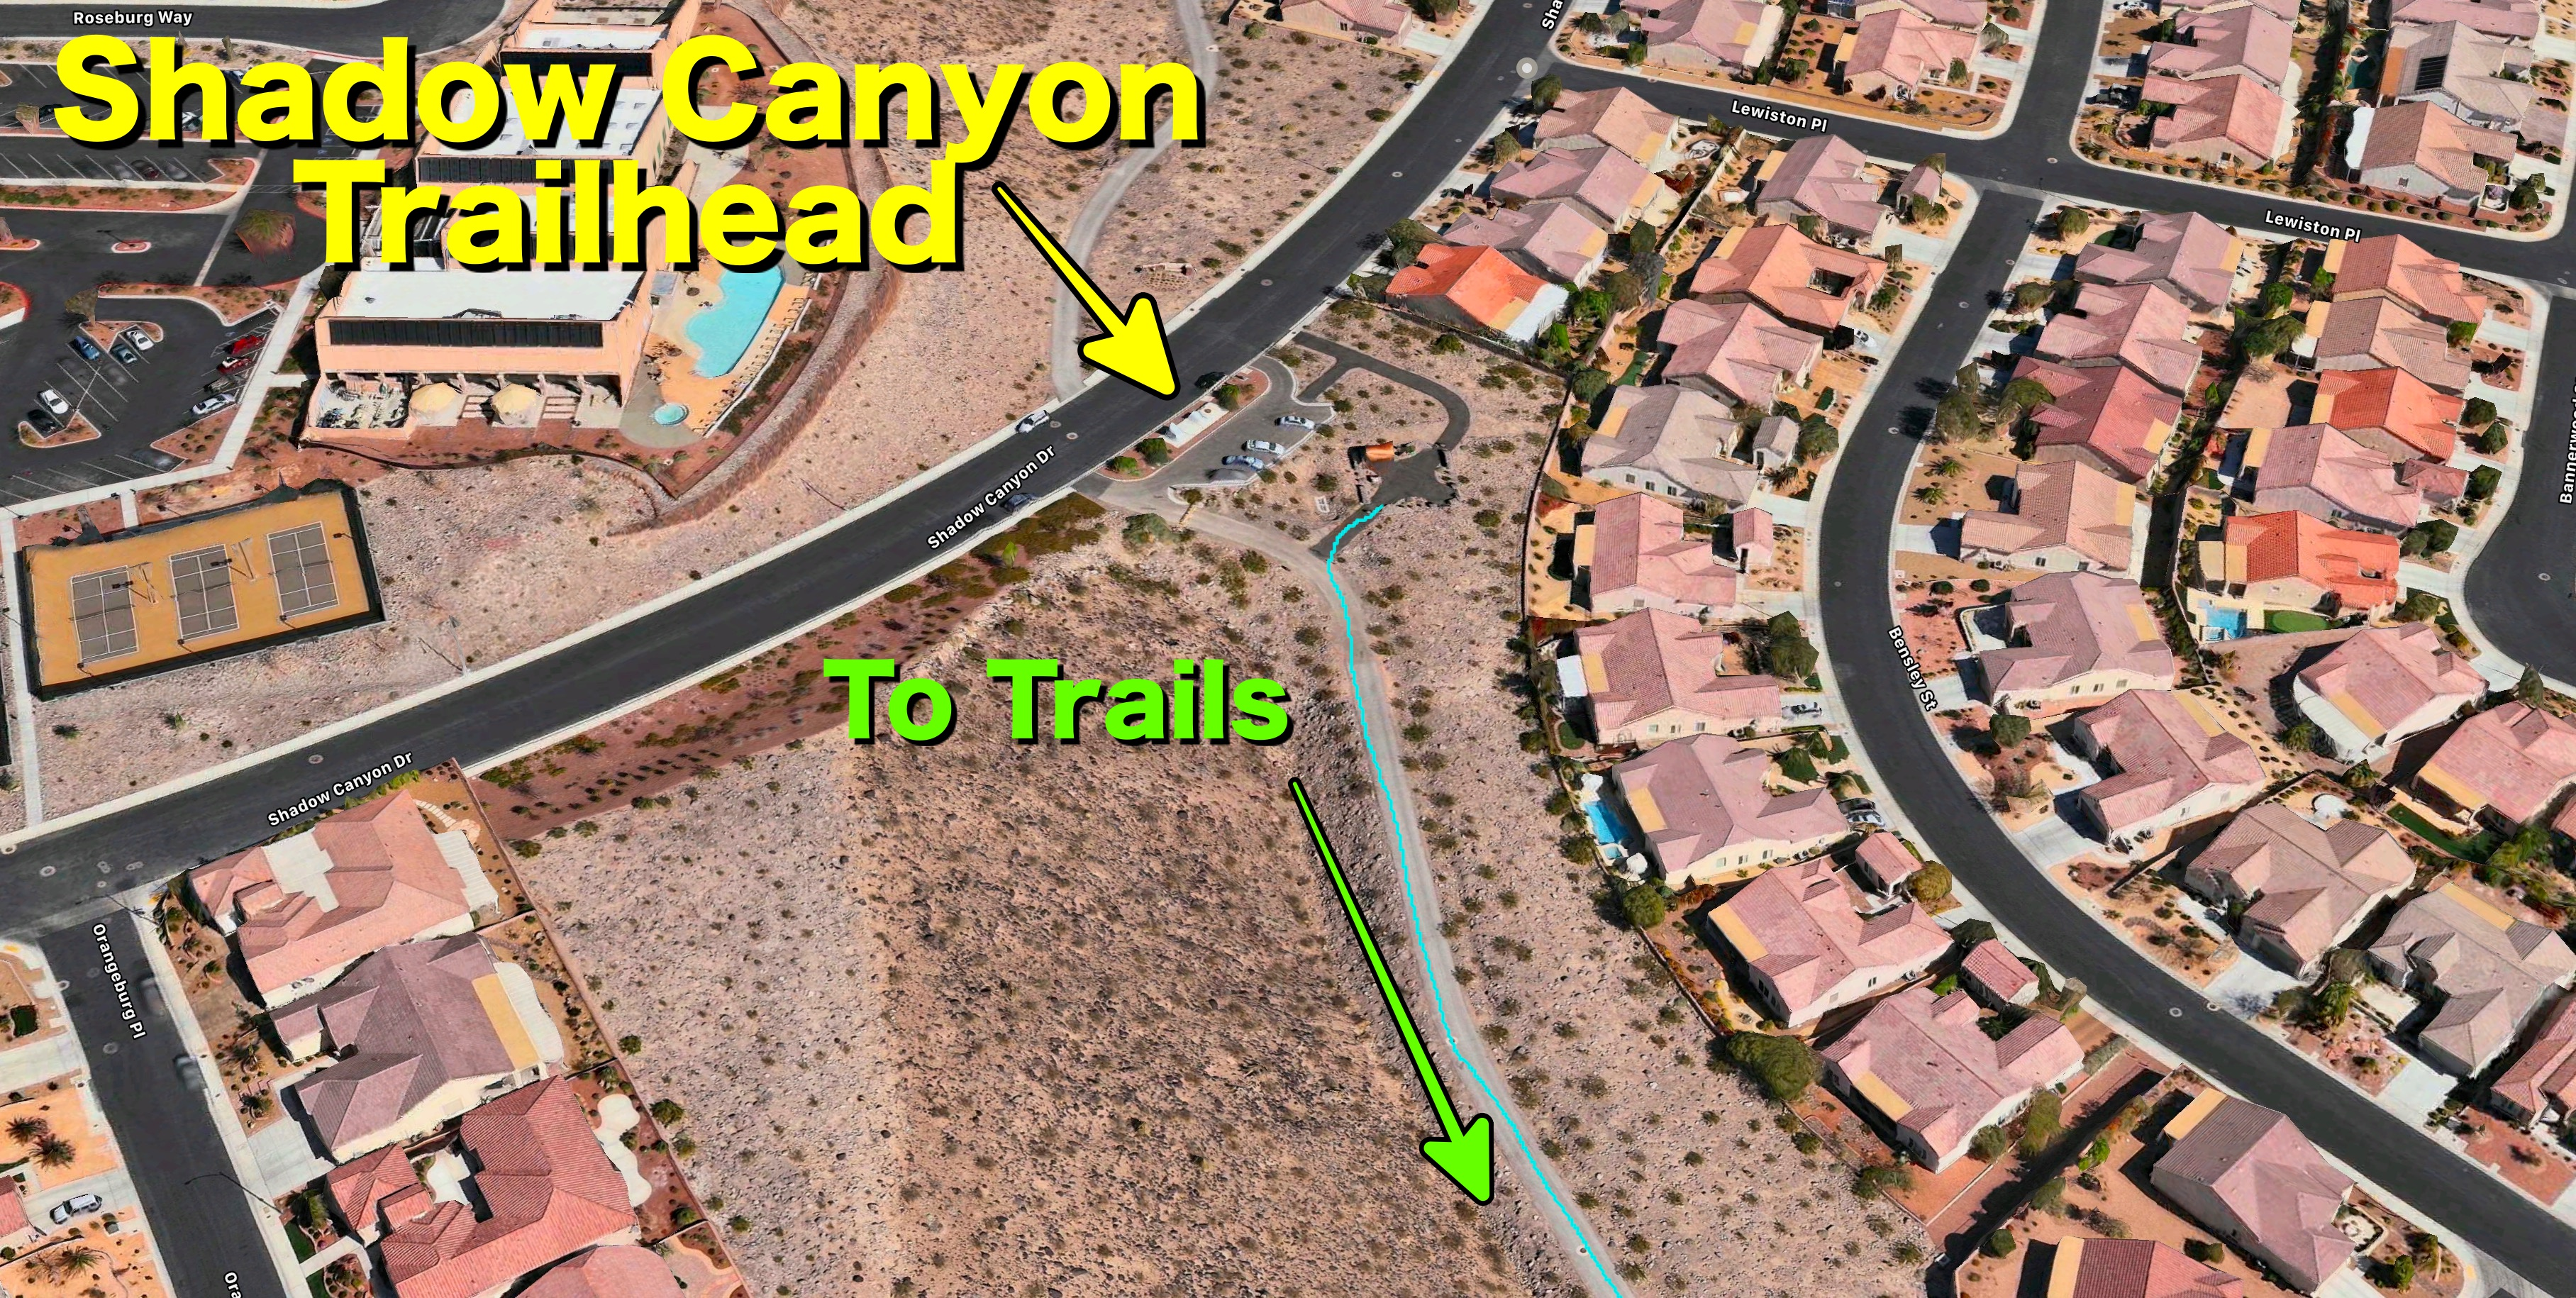 Shadow Canyon Trailhead Overview